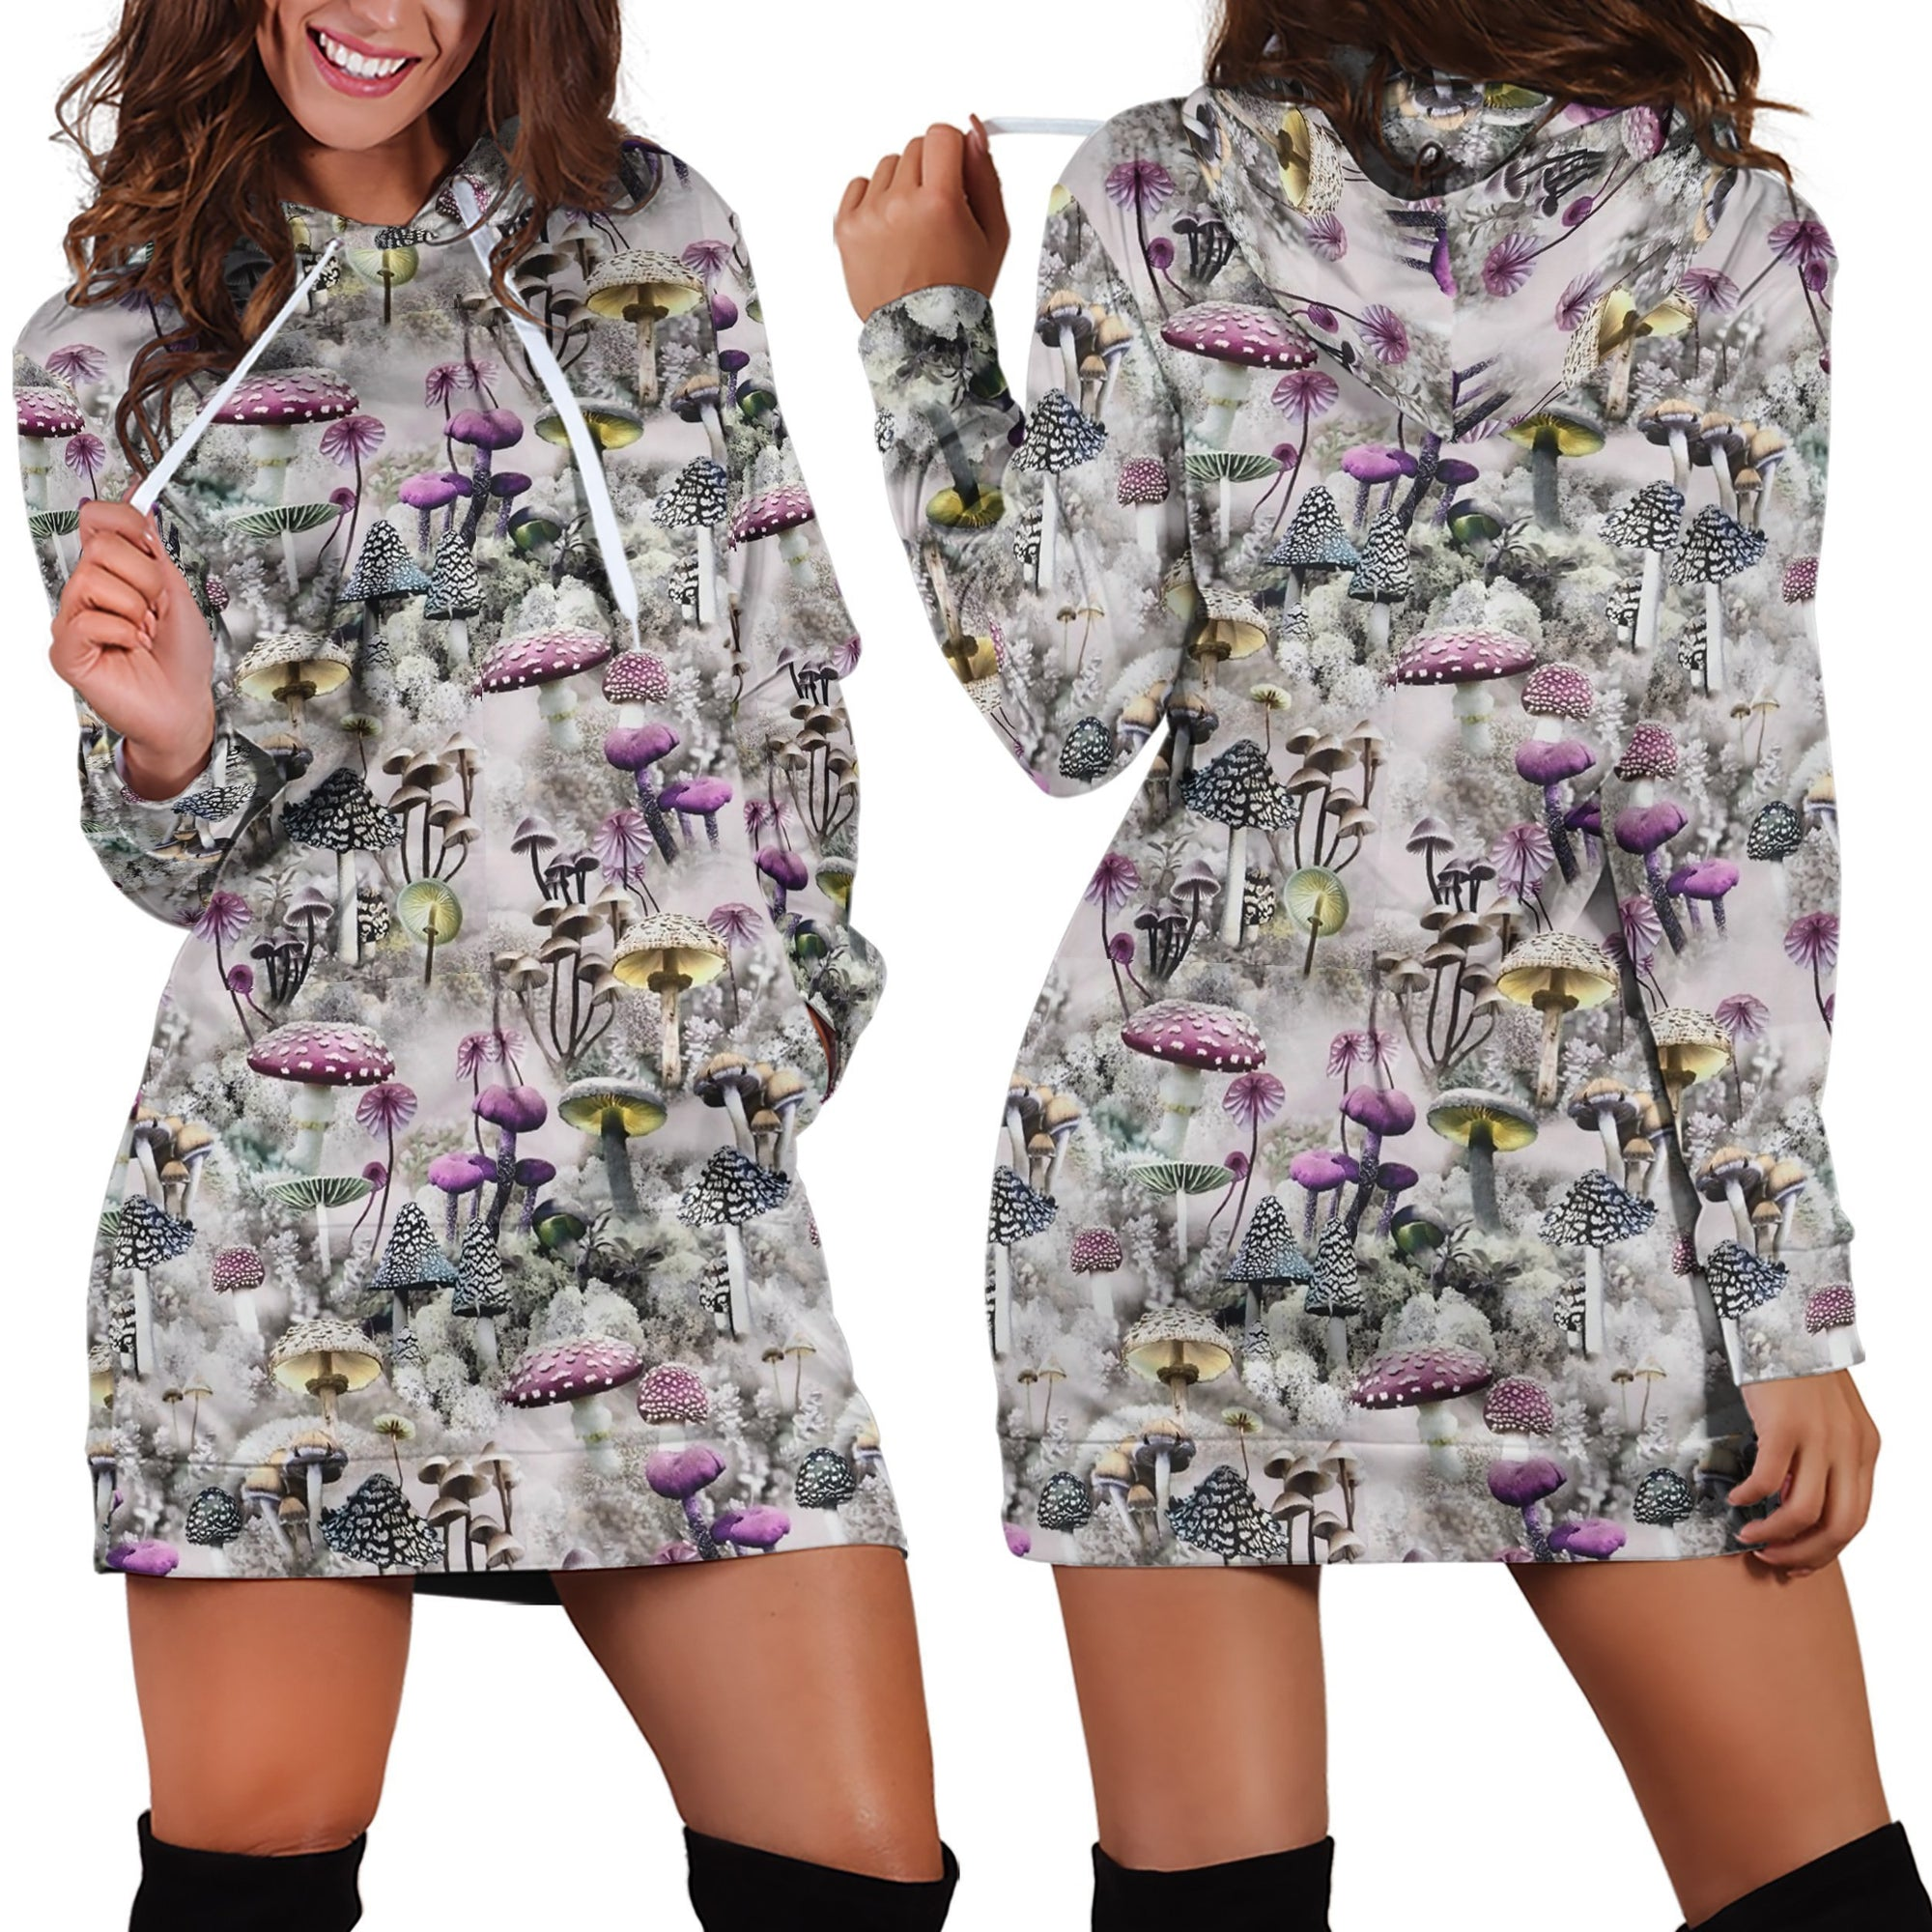 3D All Over Print Mushrooms and Winter Hoodie Dress-Apparel-NTH-Hoodie Dress-S-Vibe Cosy™